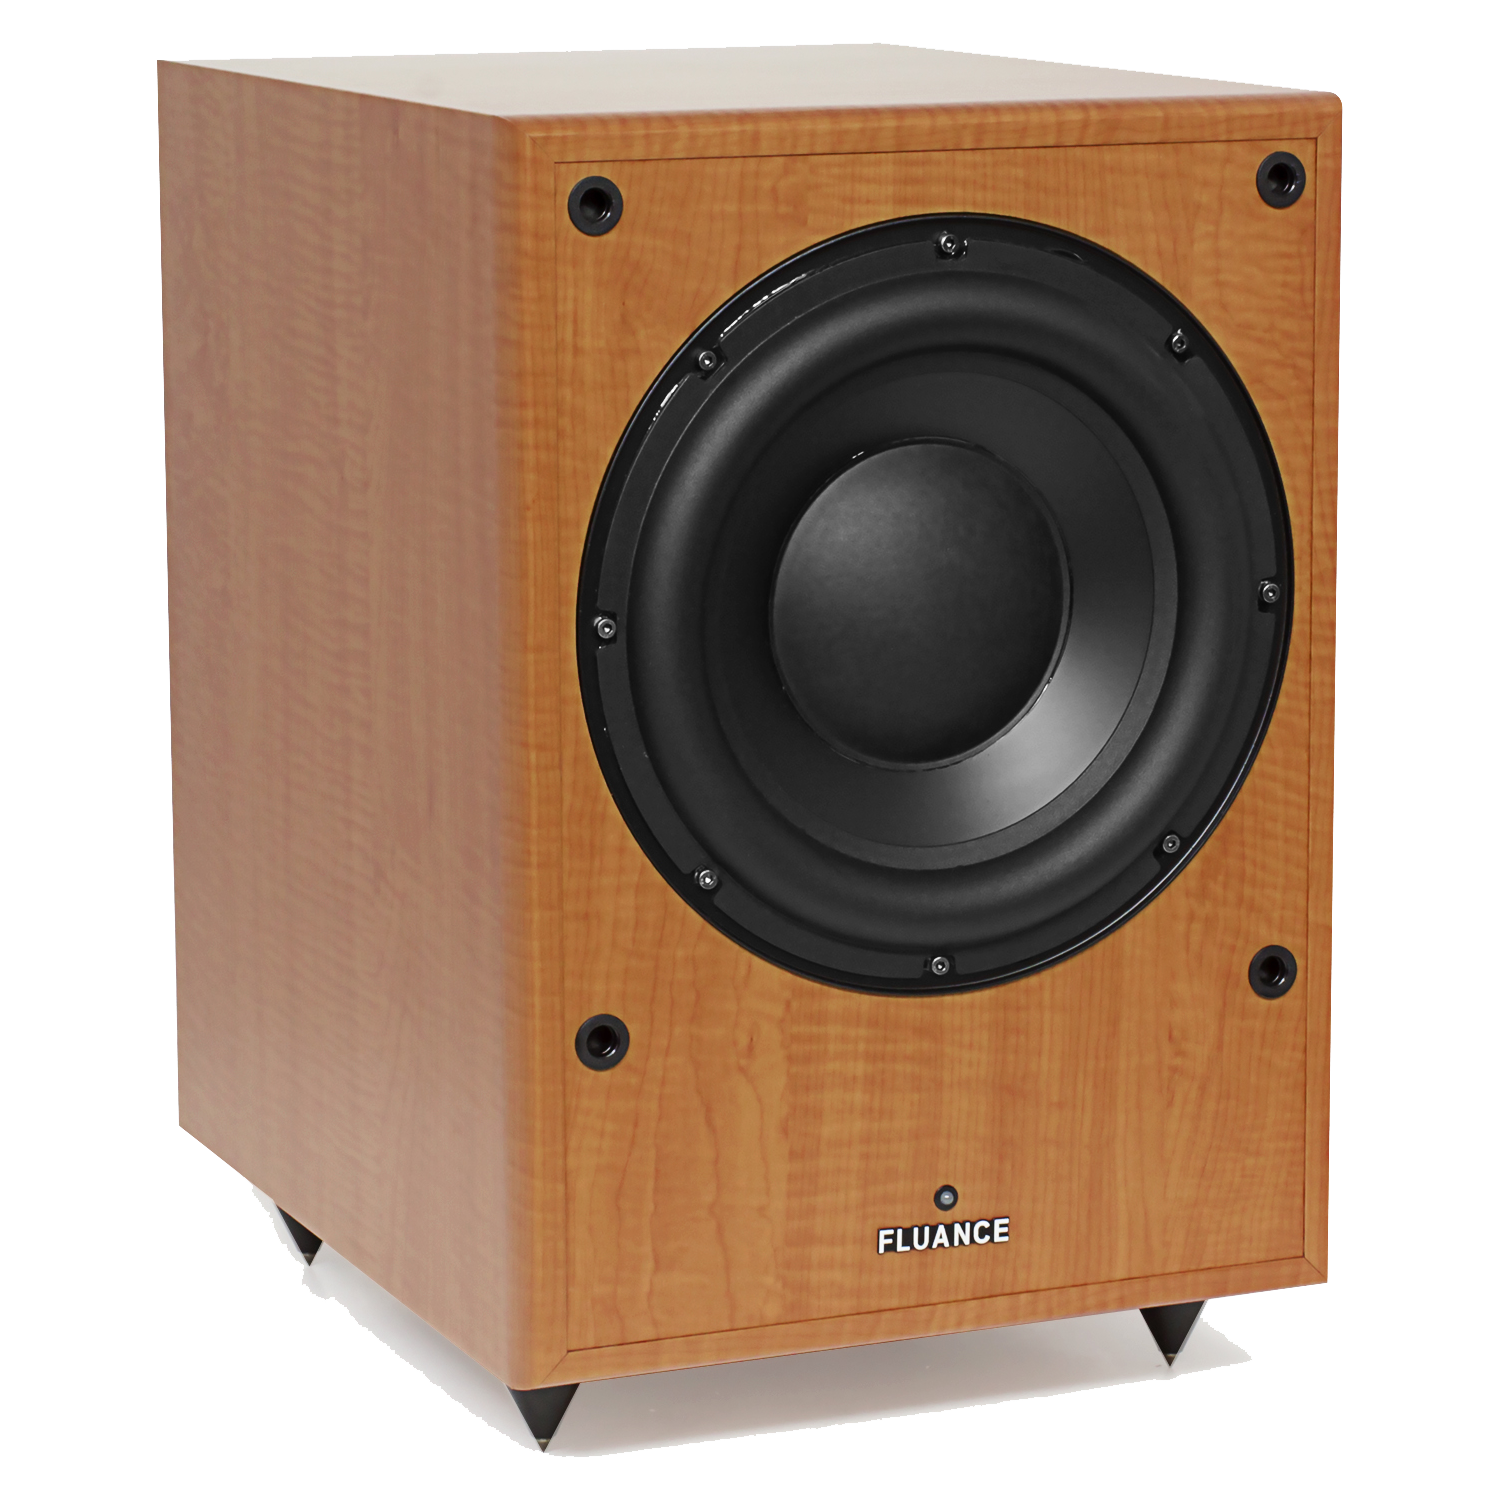 DB150 10 inch 150 Watt Low Frequency Powered Subwoofer - Natural Beech